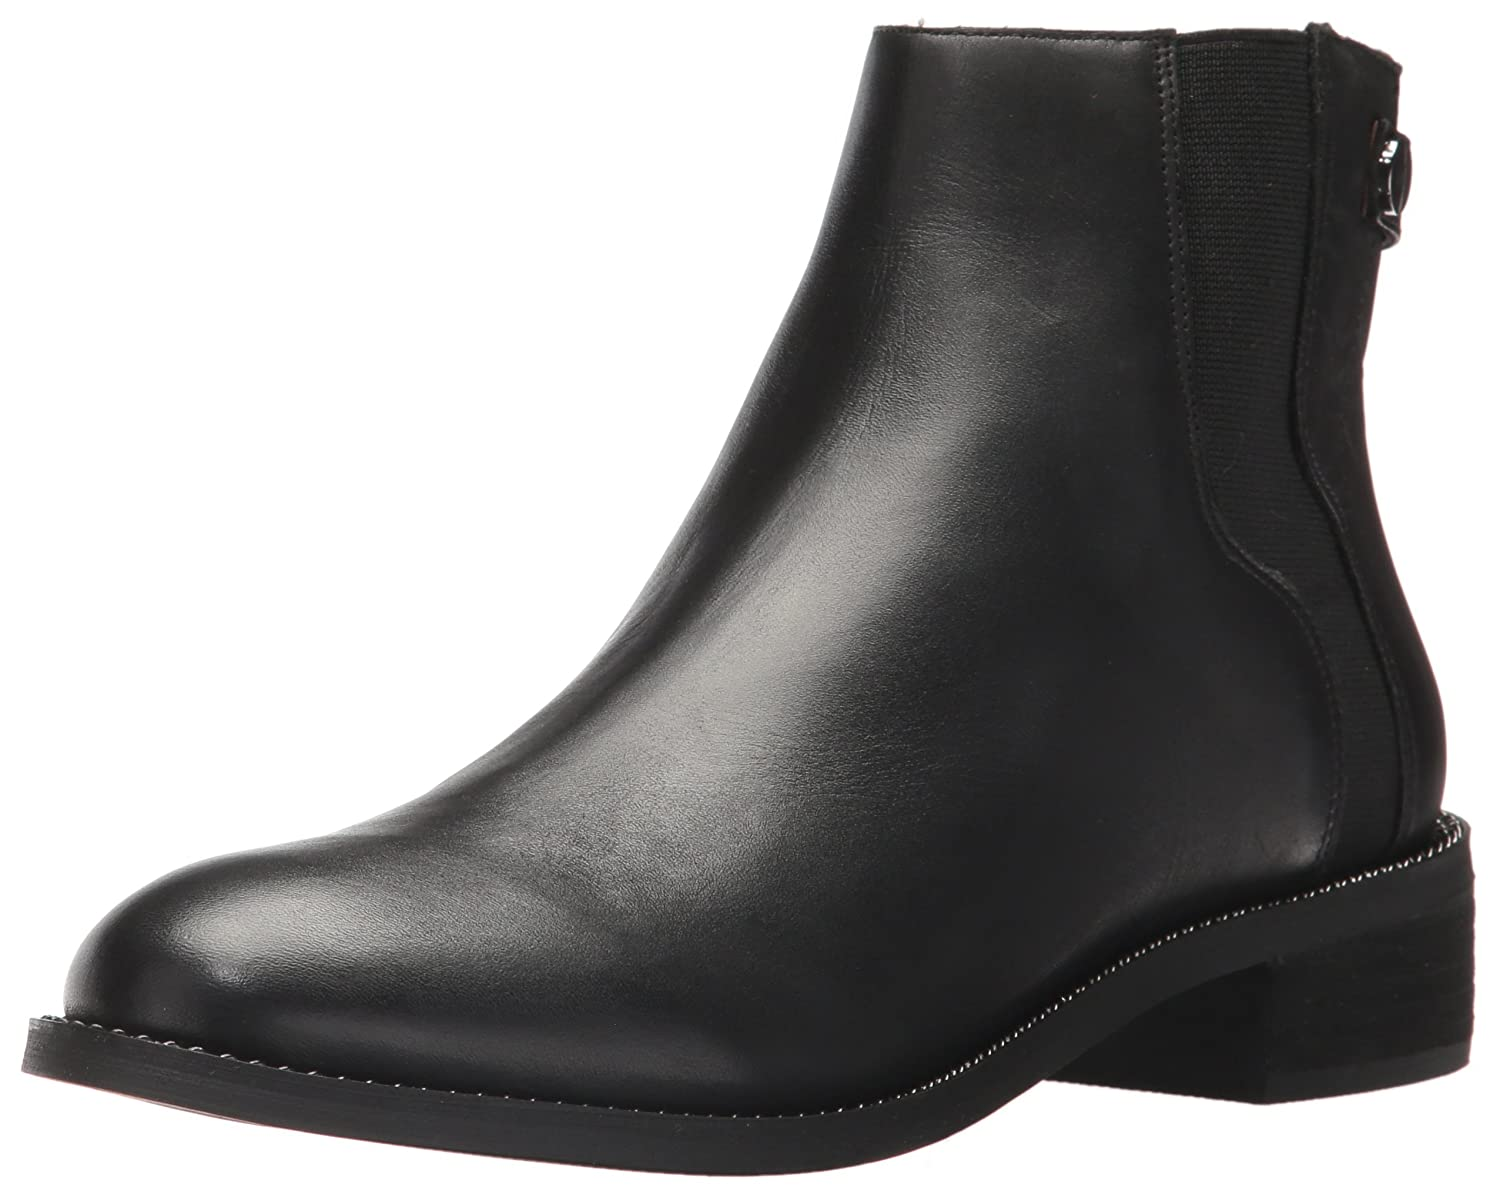 Franco Sarto Women's Brandy Ankle Boot B06XSNCMXB 7 B(M) US|Black